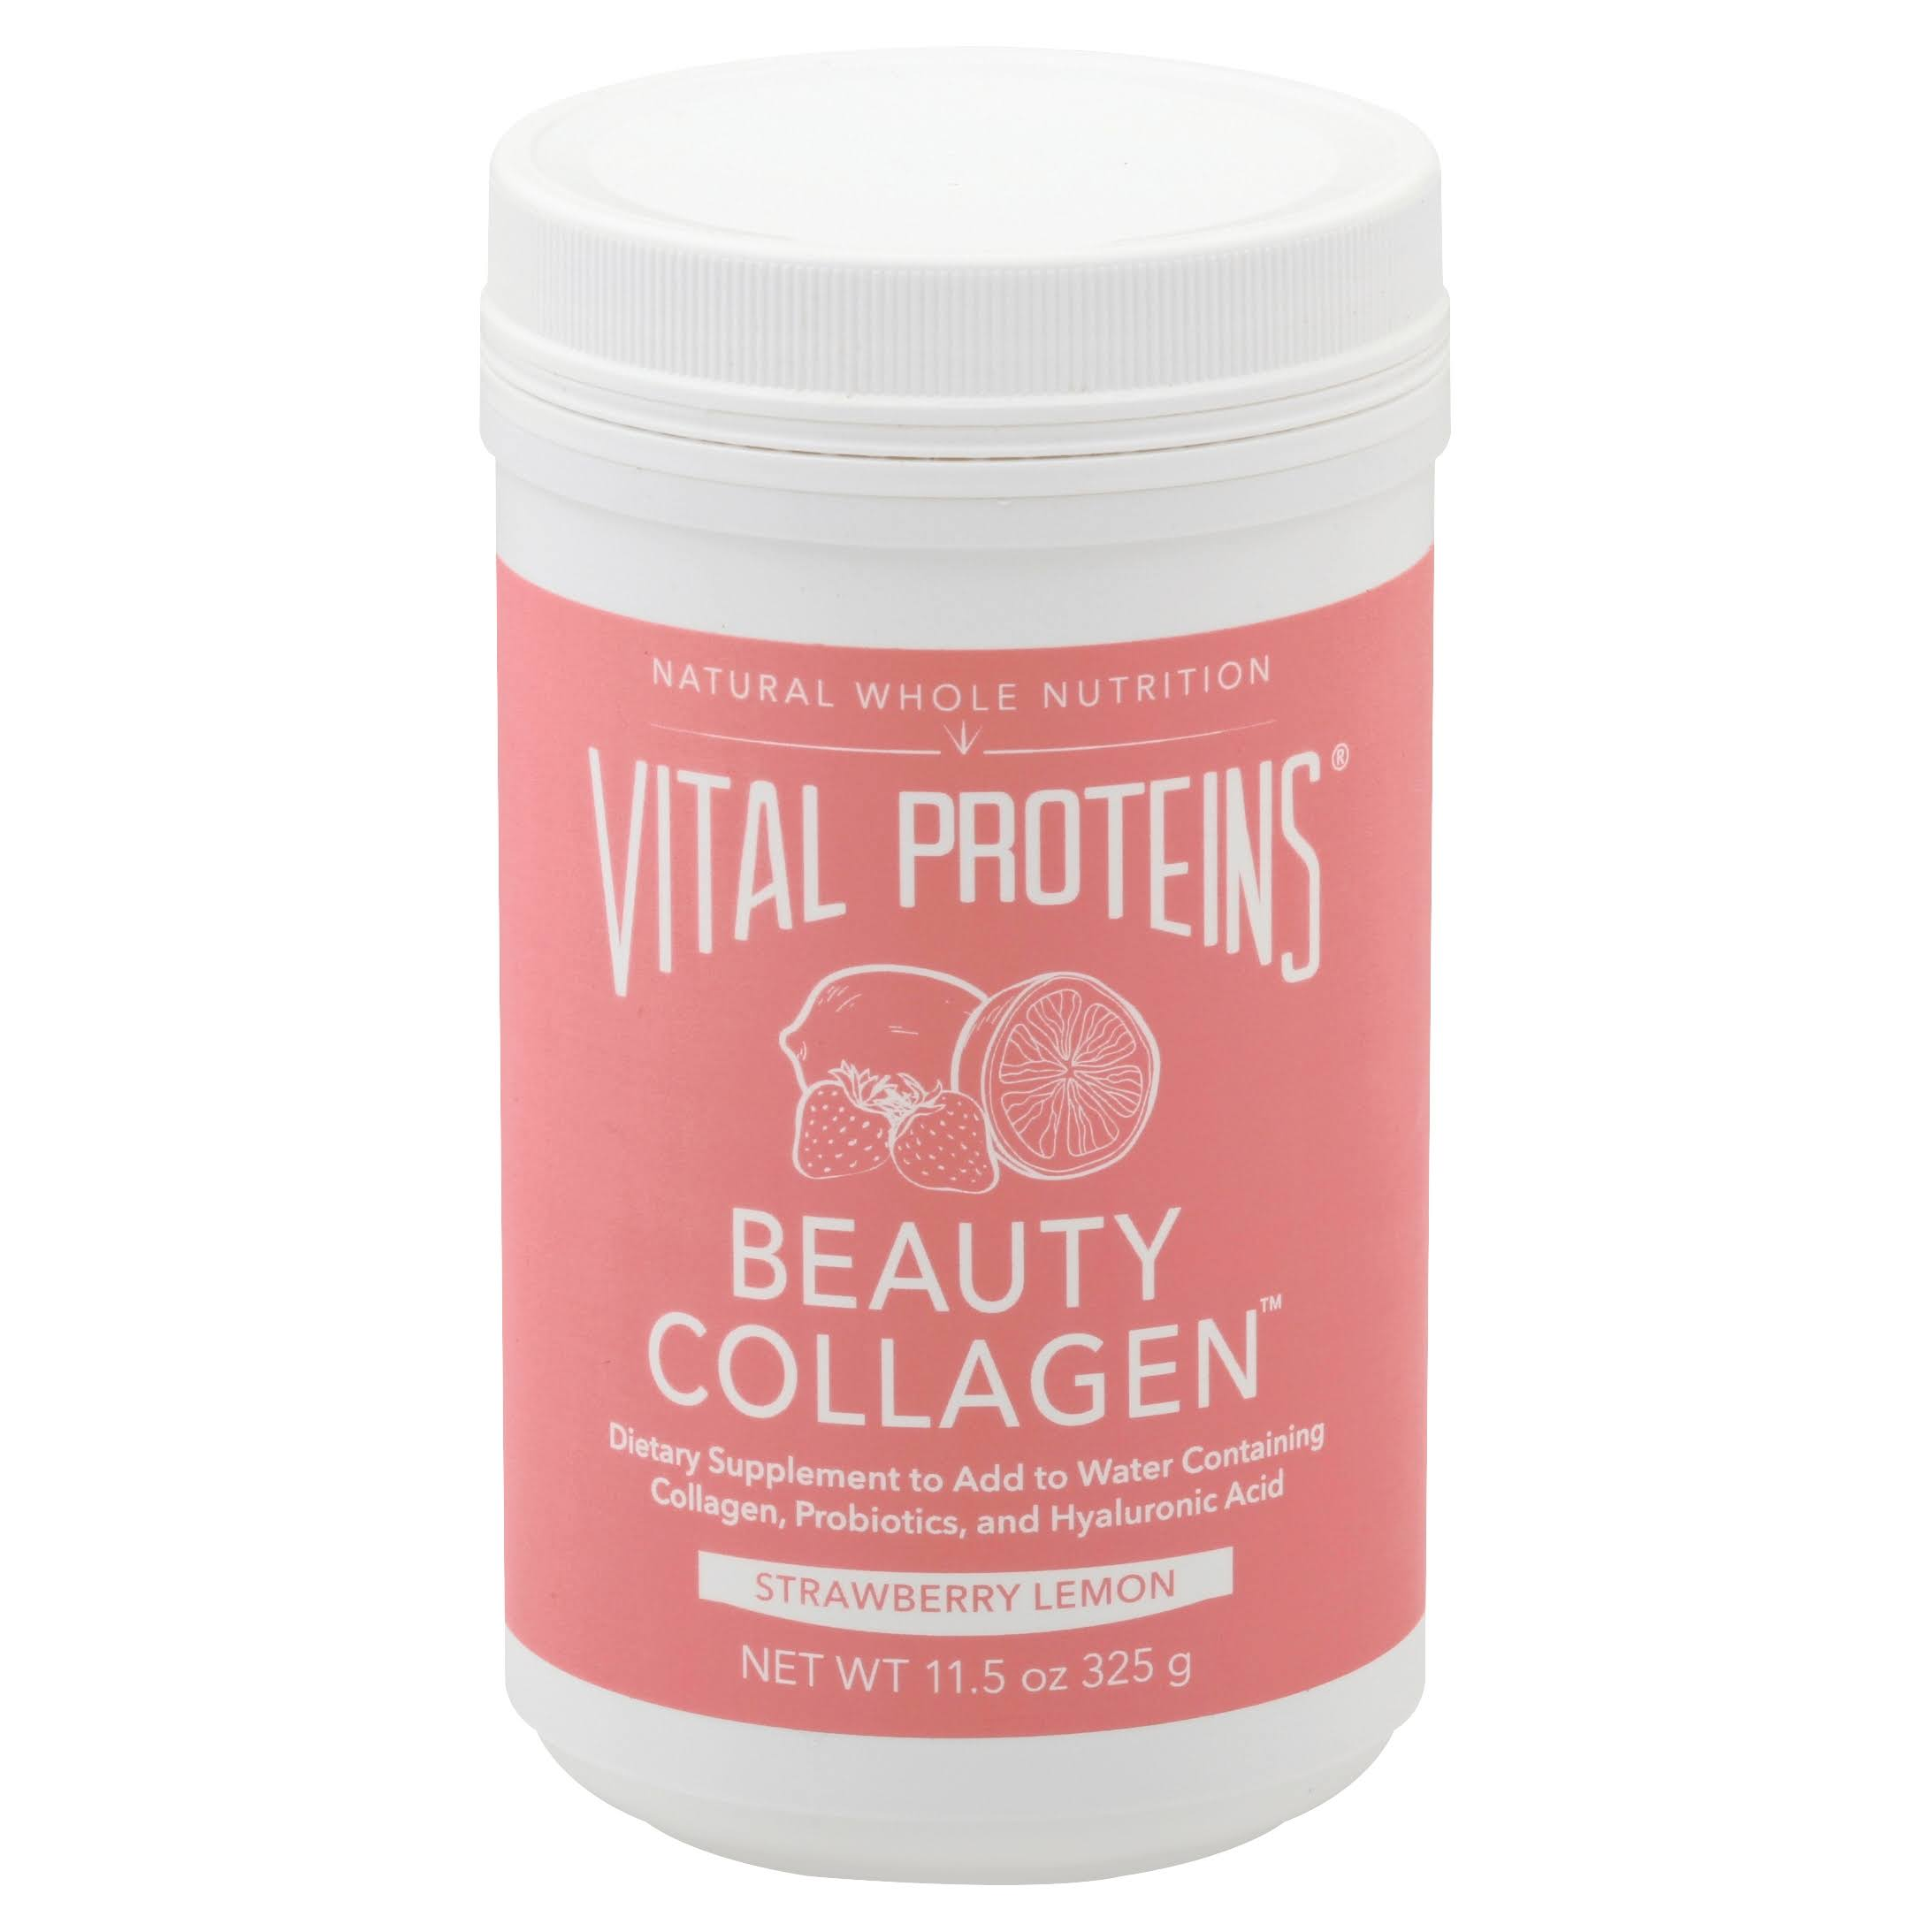 Vital Proteins Beauty Collagen Dietary Supplement - 11.5oz